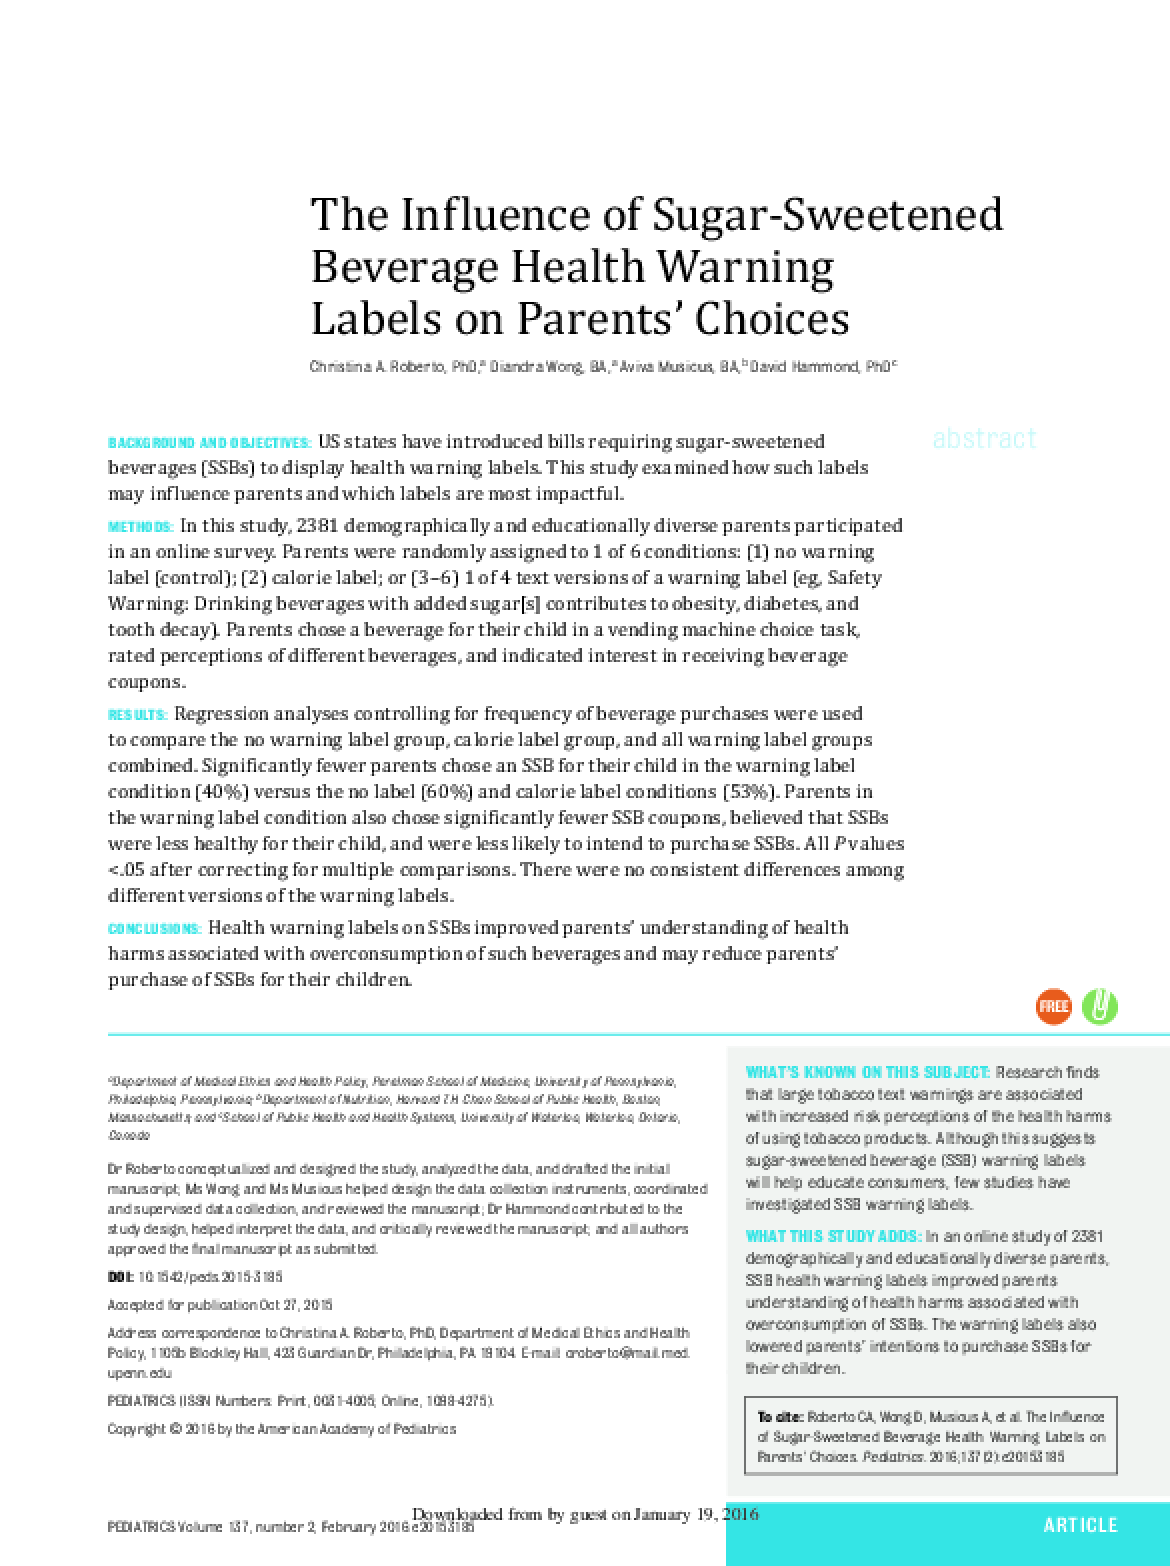 The Influence of Sugar-Sweetened Beverage Health Warning Labels on Parents' Choices